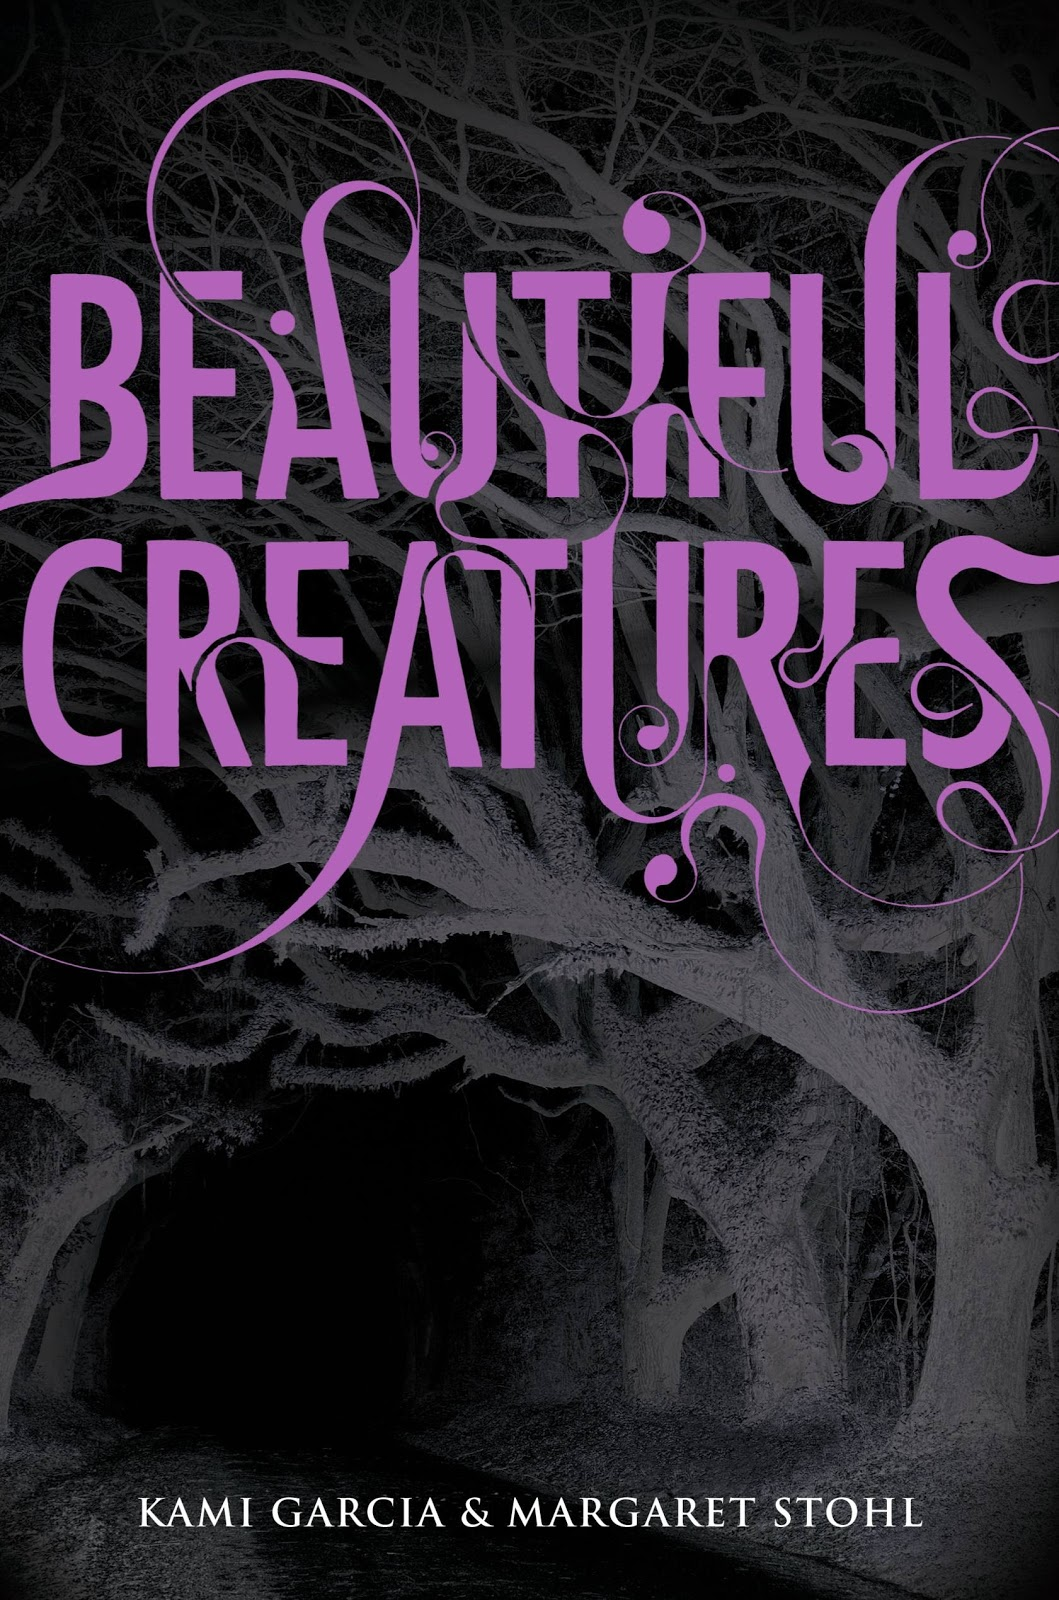 Book Cover Portadas Reviews : Down the rabbit hole book review beautiful creatures by